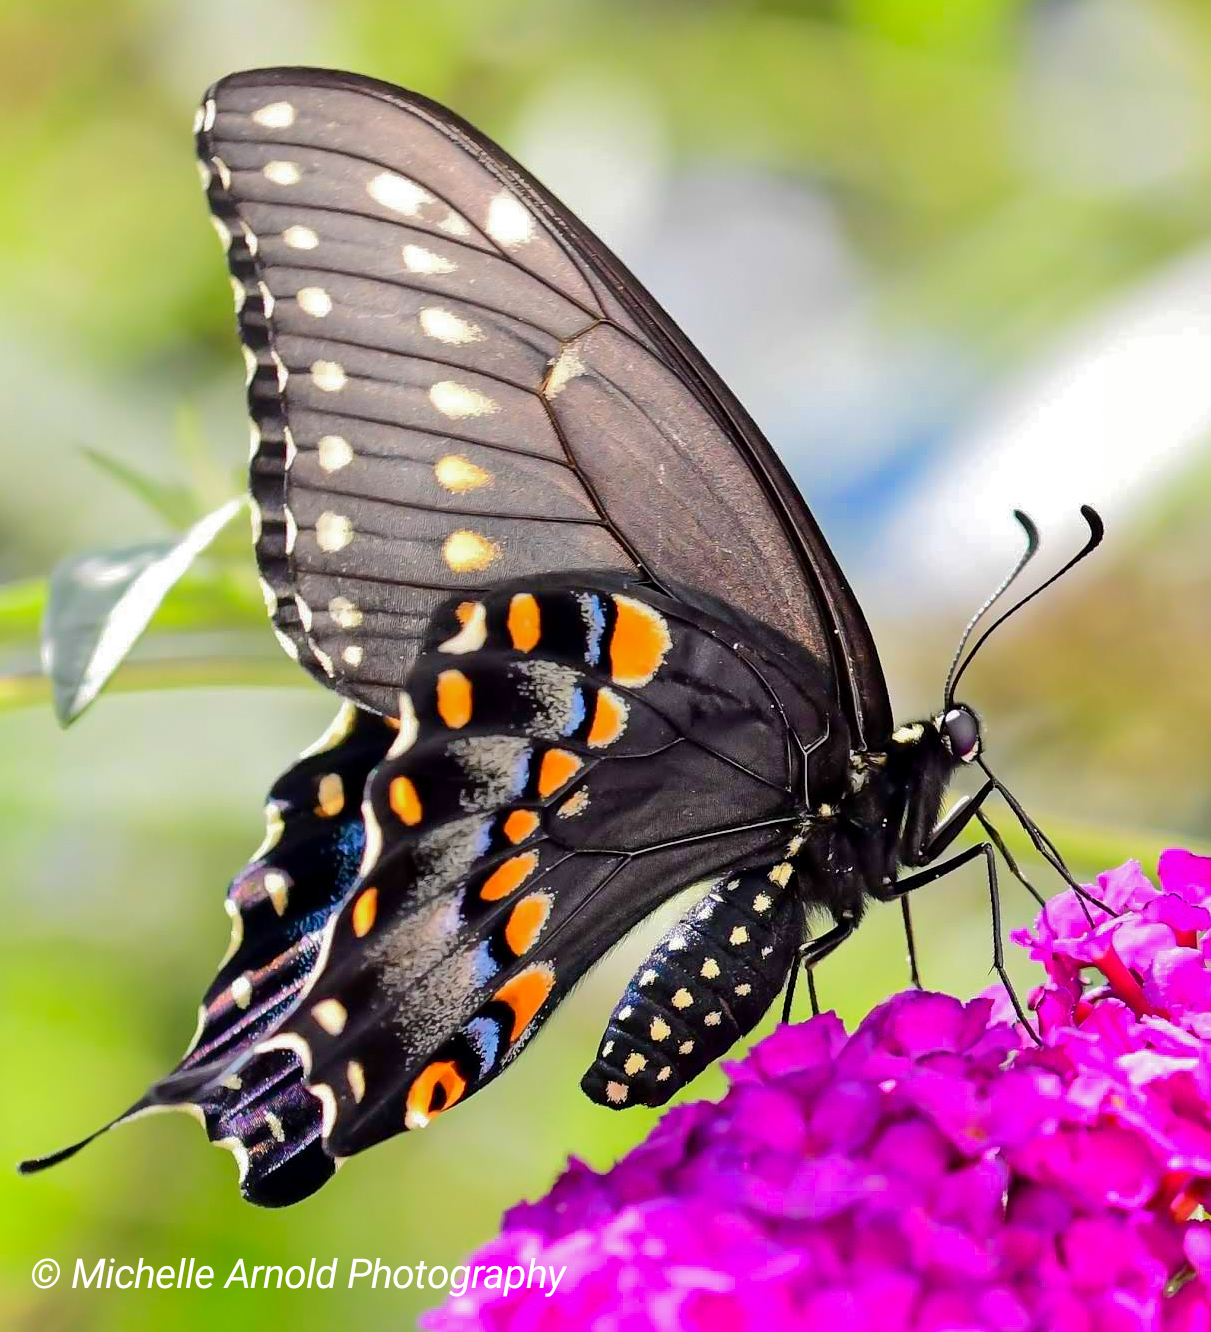 Female Eastern Black Swallowtail